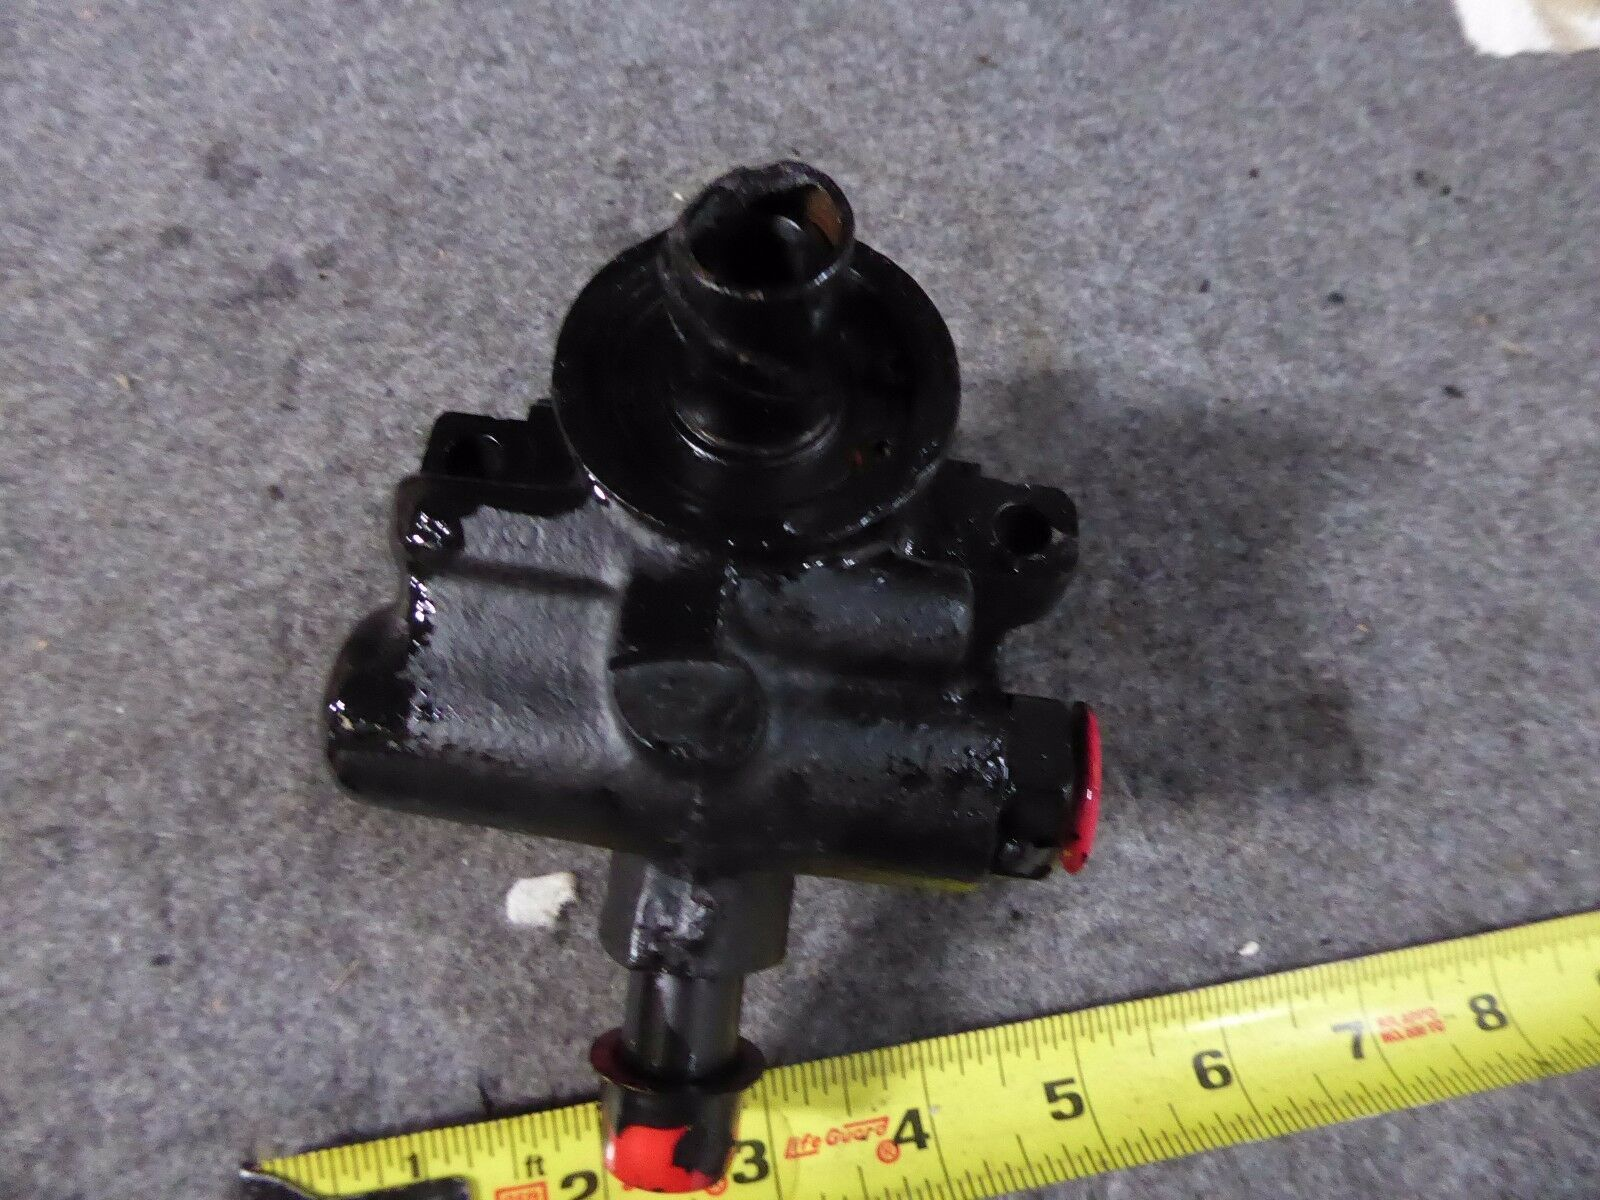 71-4210 GMC Power Steering Pump Remanufactured By Arrow Chevrolet 1983-85